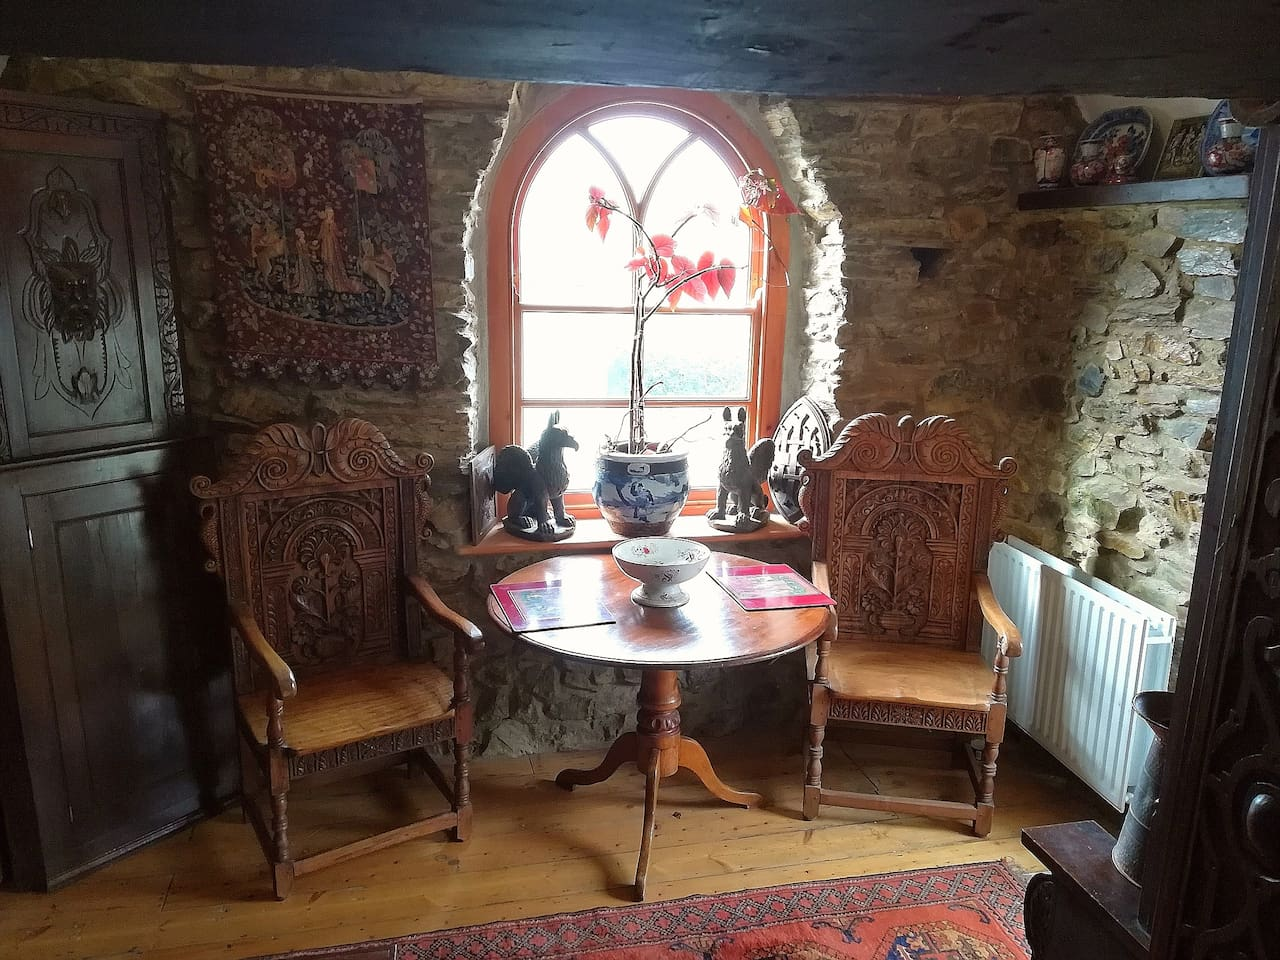 Guest's own medieval style dining area